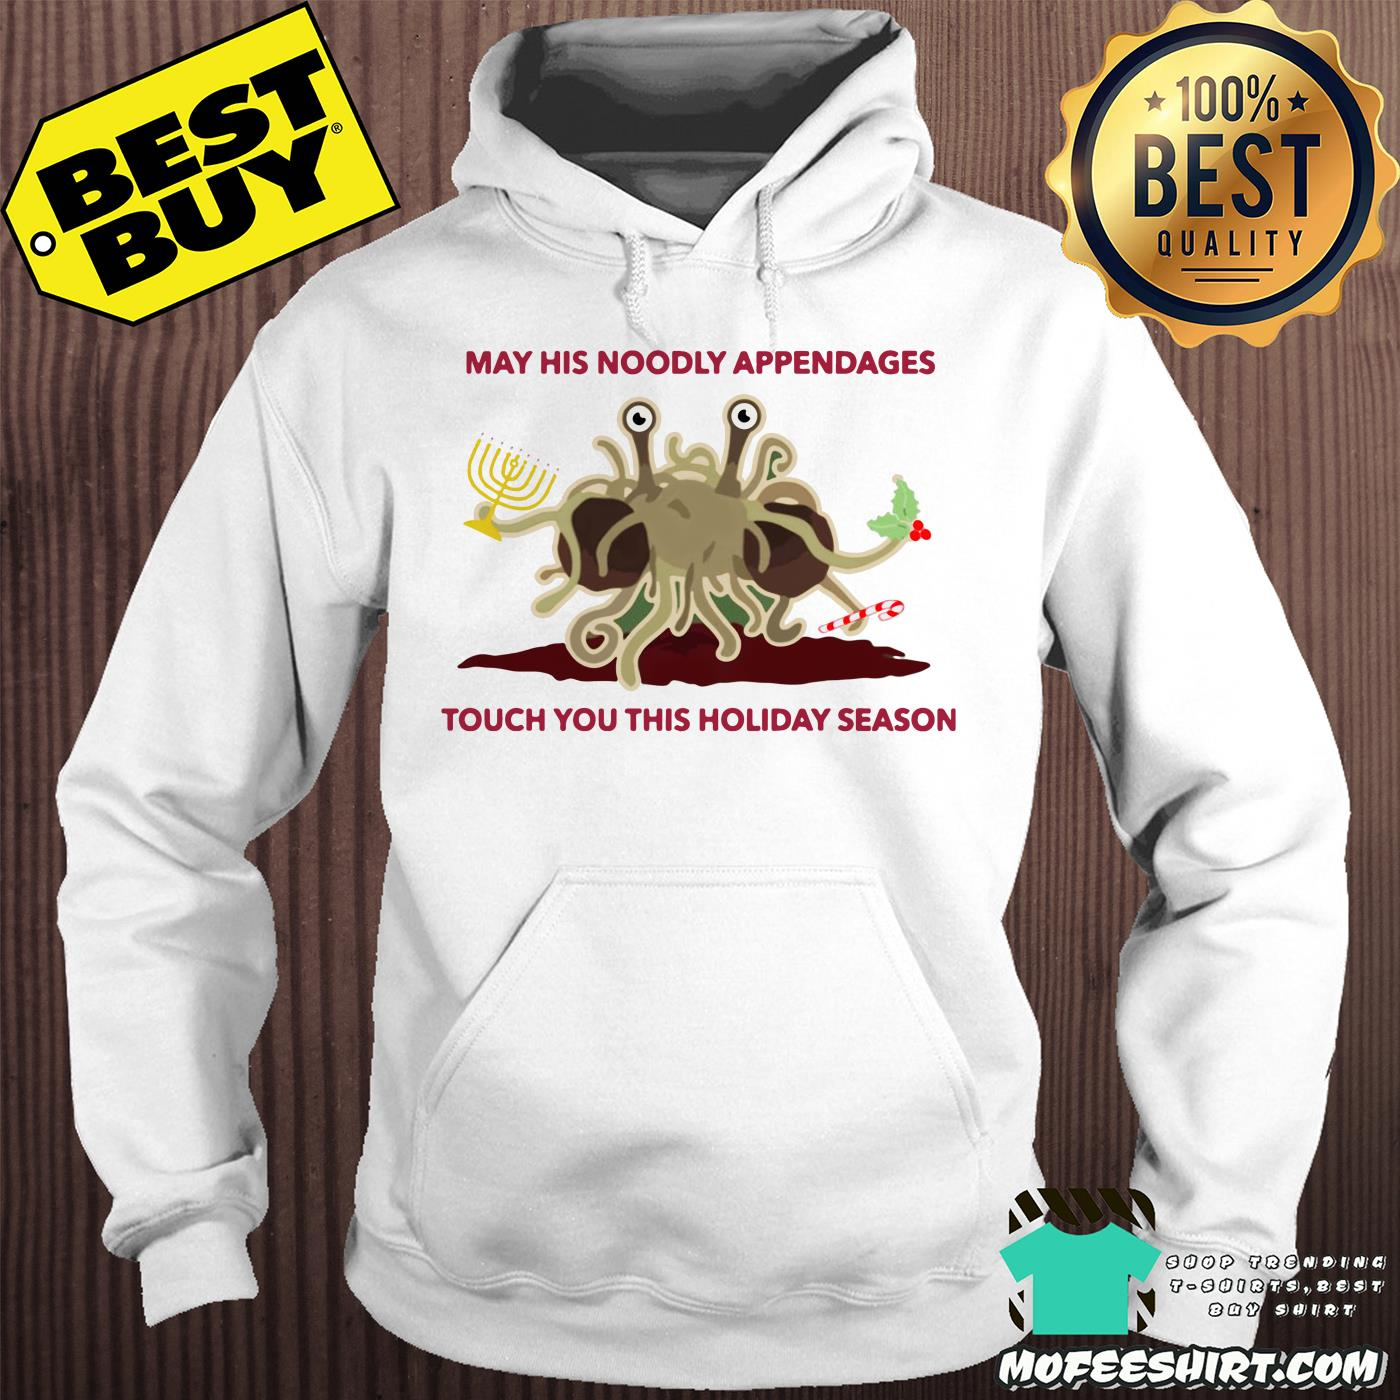 spaghetti monster may his noodly appendages touch you this holiday season hoodie - Spaghetti Monster May his Noodly appendages touch you this holiday season shirt